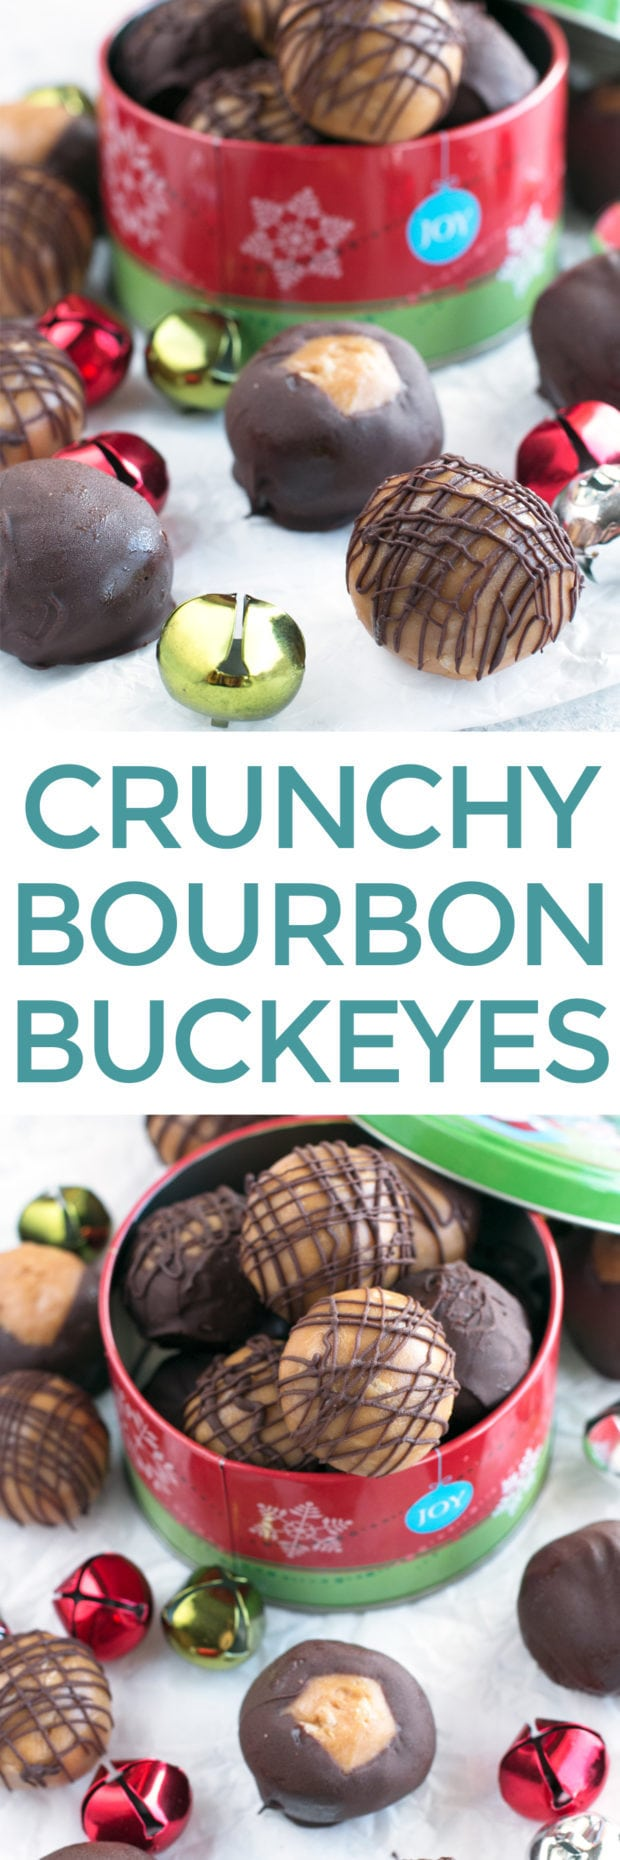 Crispy Bourbon Buckeyes | cakenknife.com #dessert #chocolate #christmas #holiday #cookies #sweetestseason